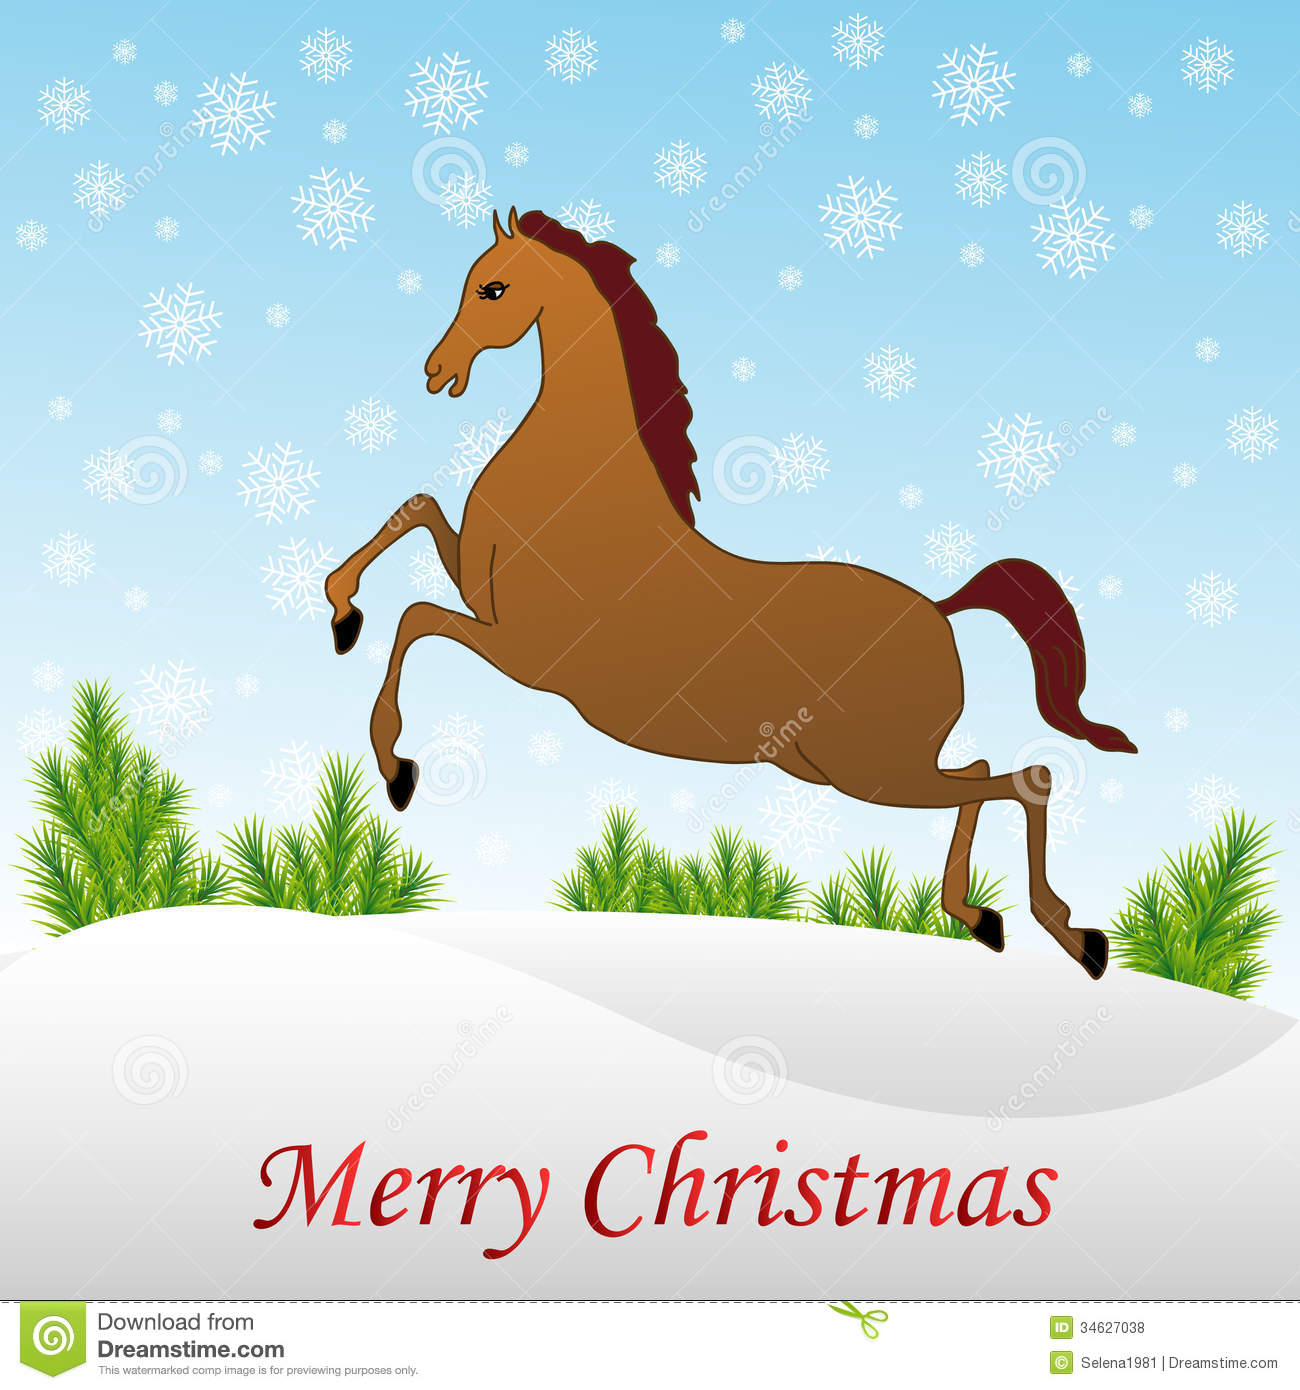 Horses in the snow clipart.